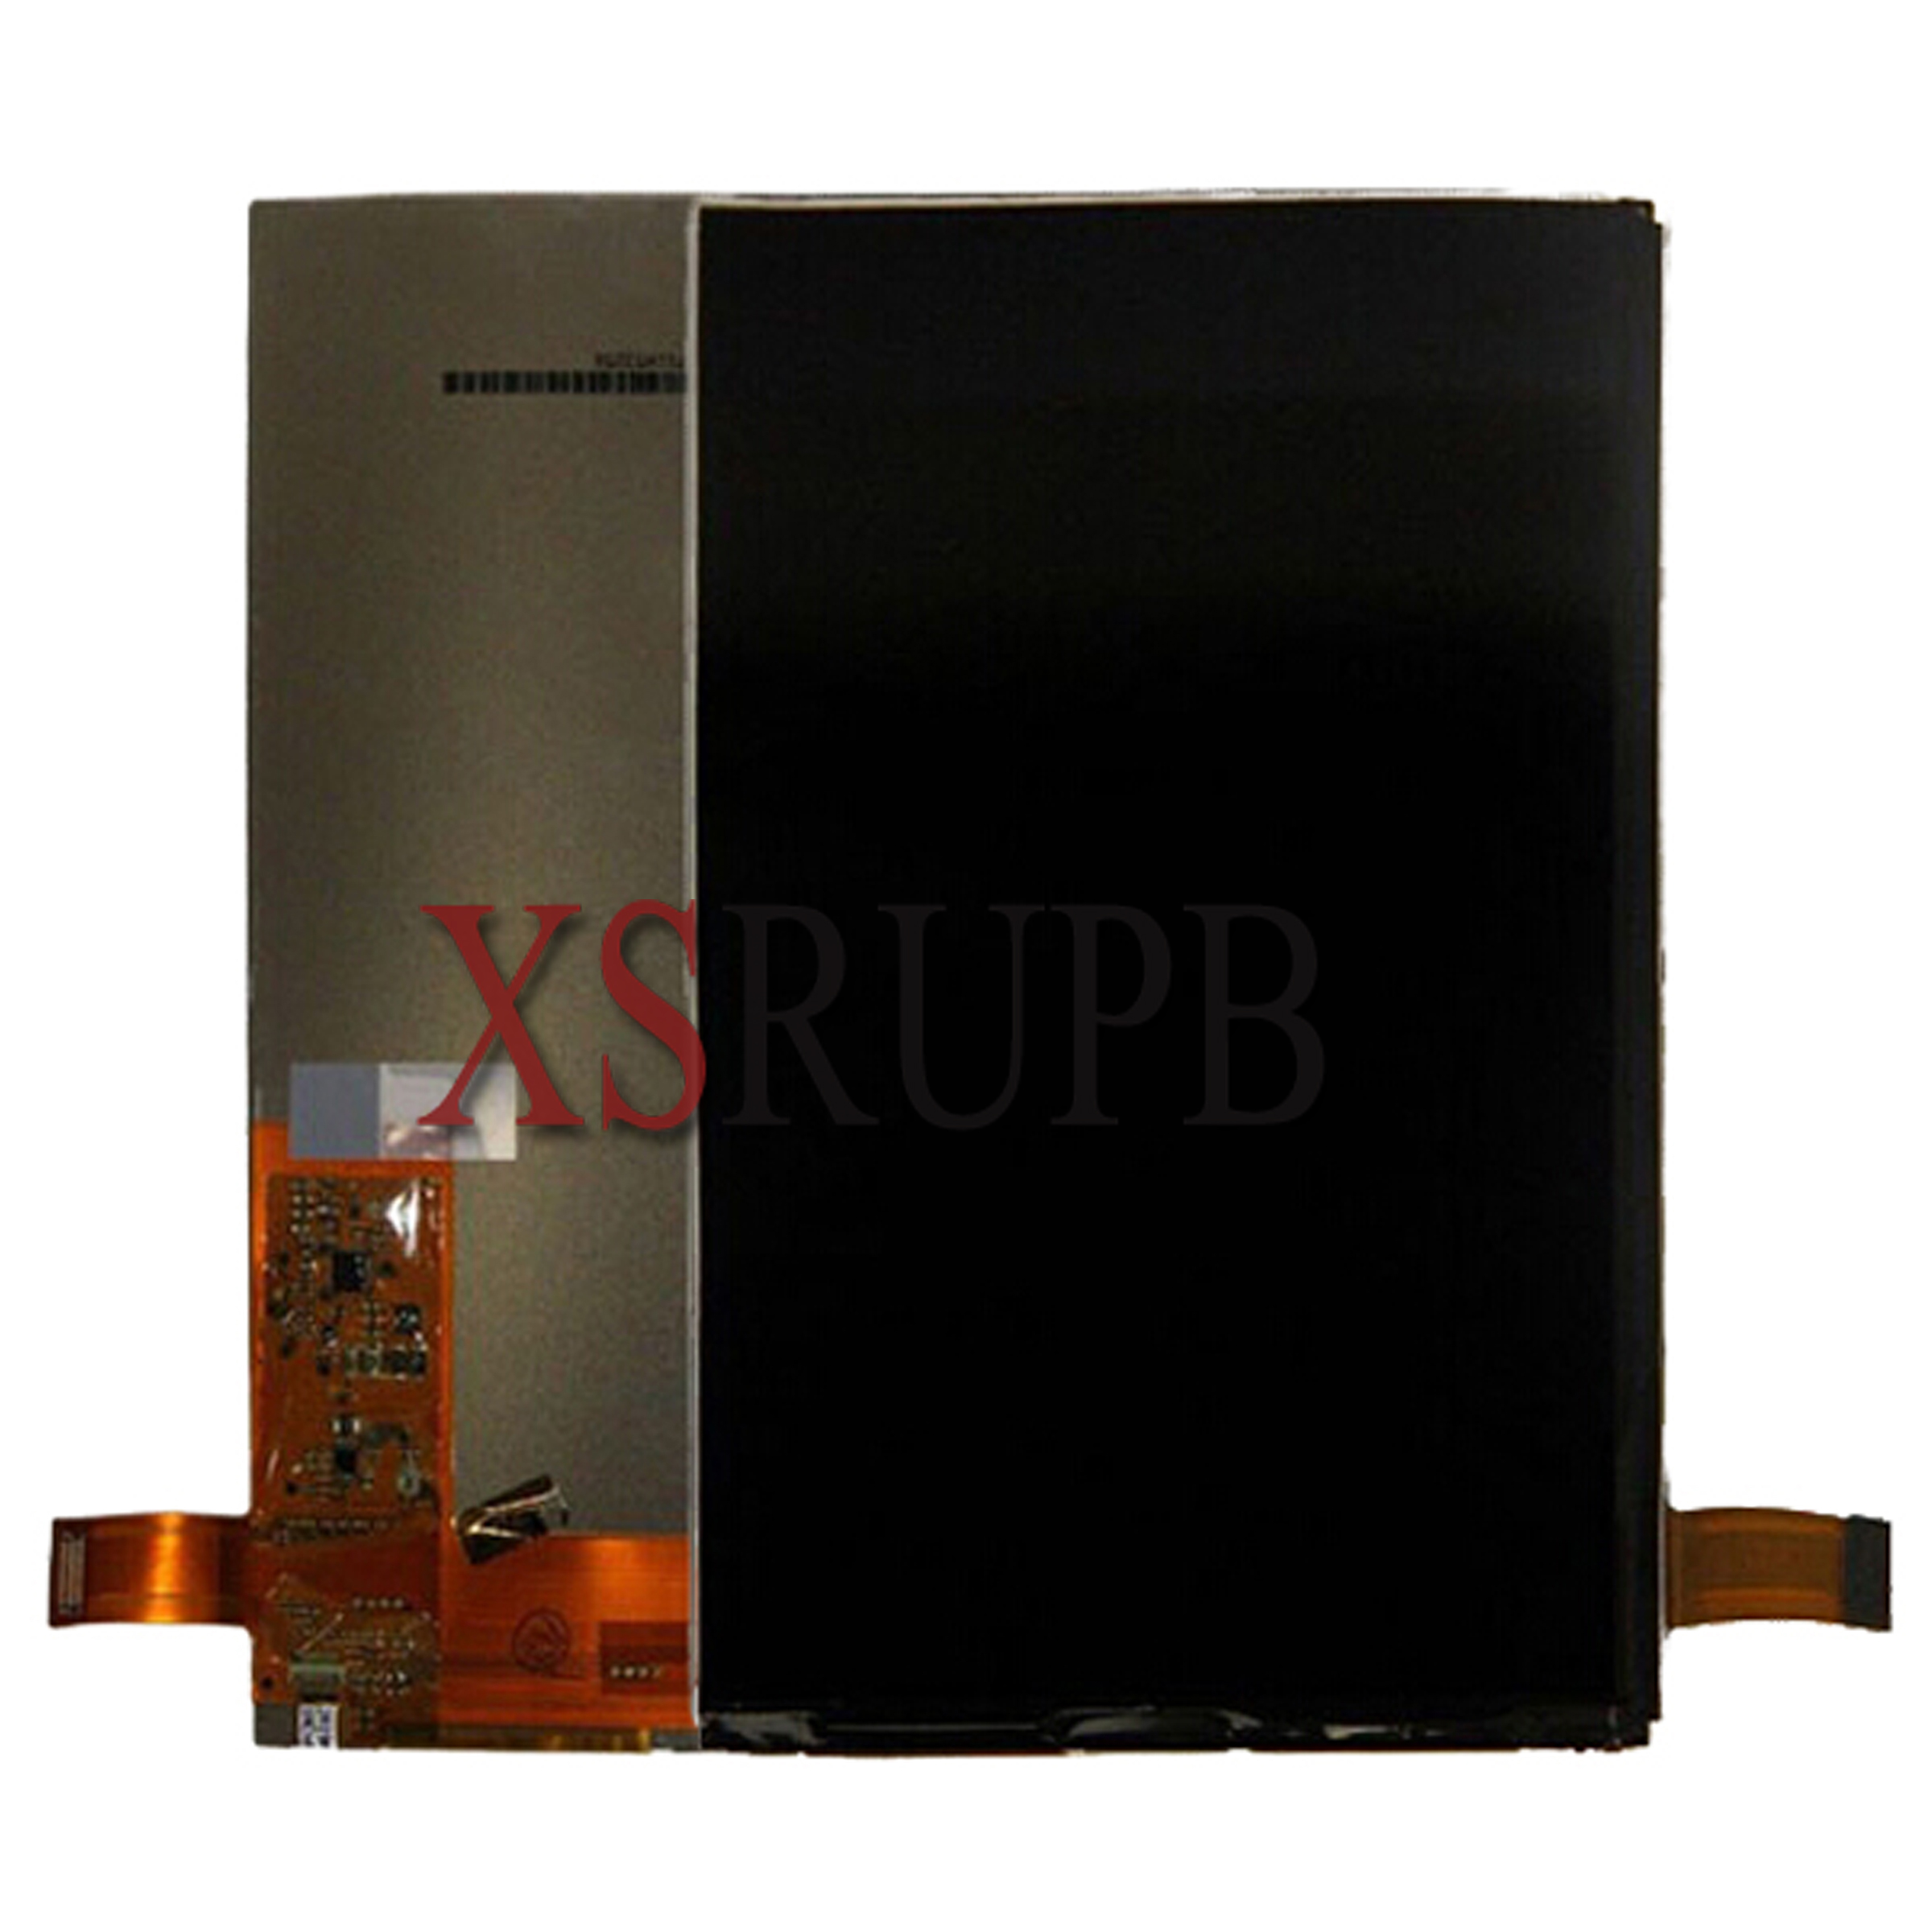 New LCD Display 7 inch PRESTIGIO MULTIPAD WIZE 3787 3G PMT3787 3G TABLET LCD Screen Panel Lens Frame replacement Free Shipping new prestigio multipad pmt3008